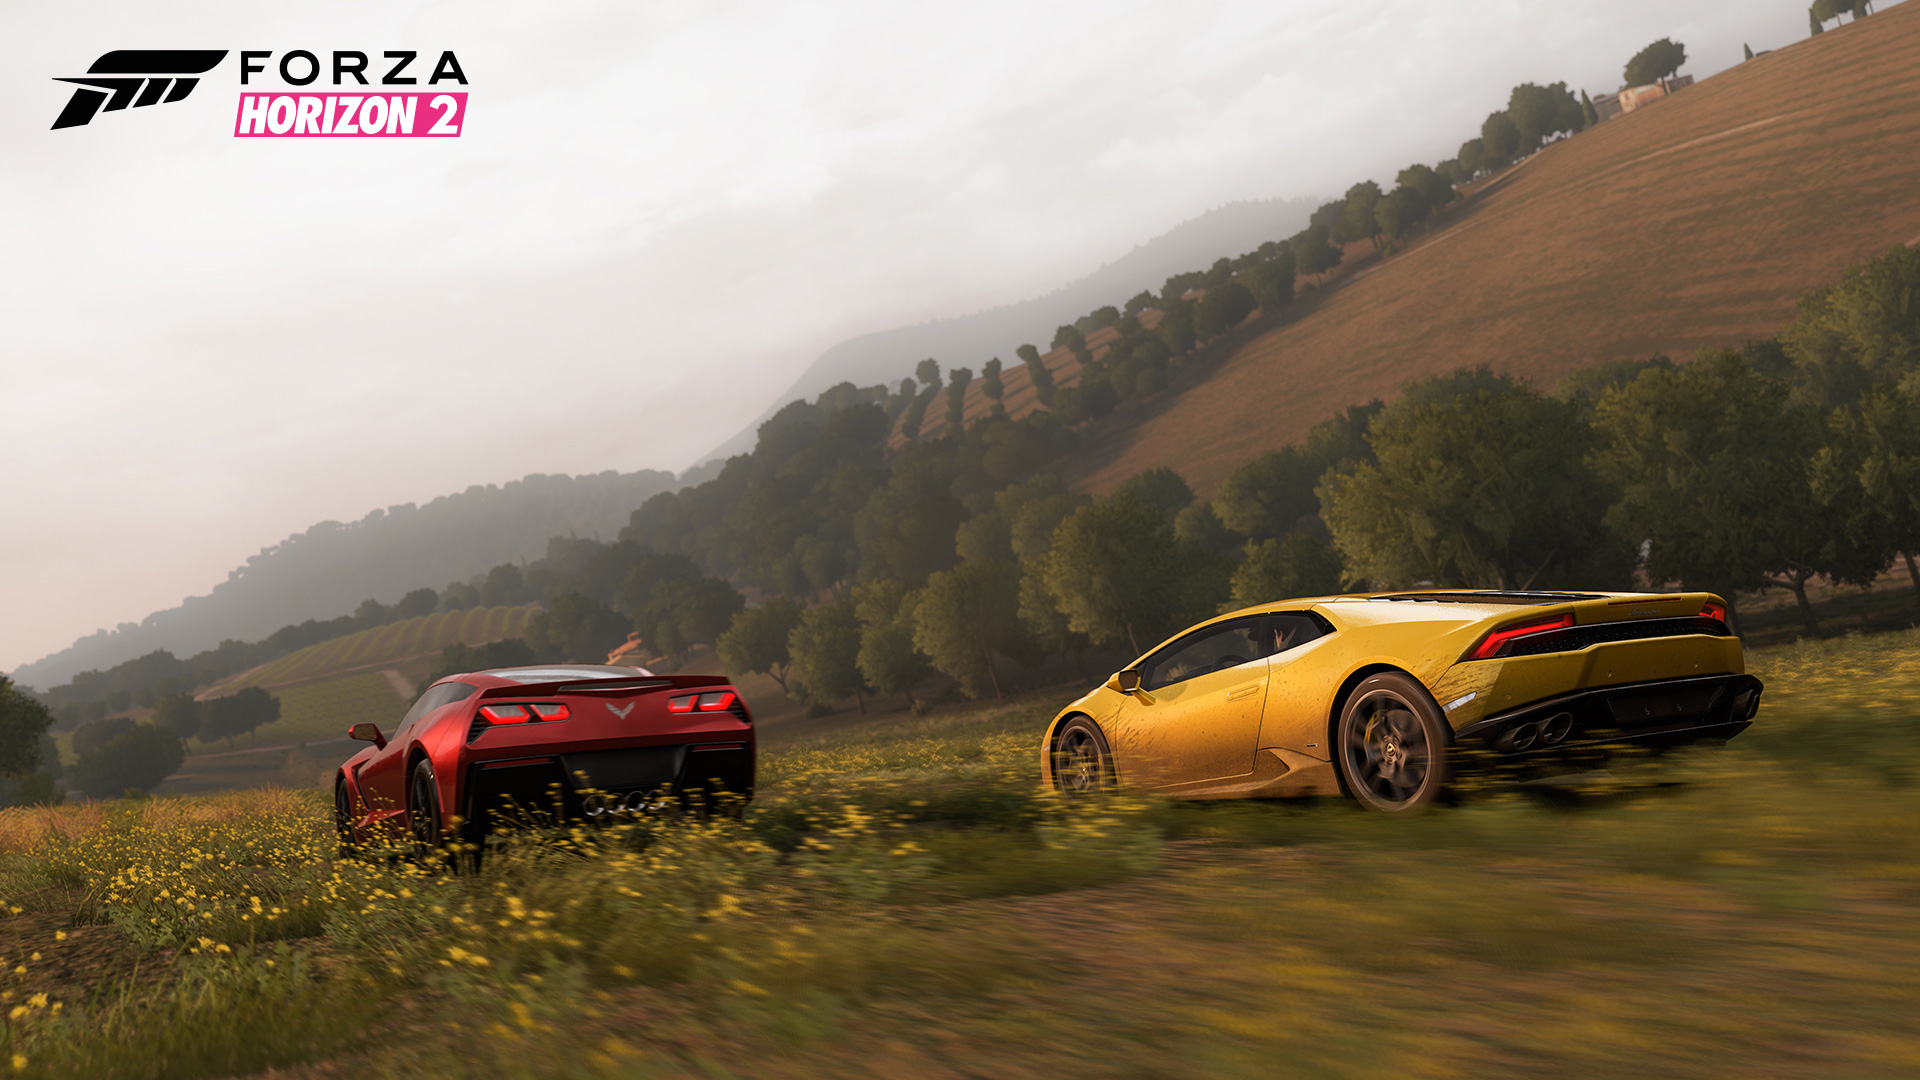 Forza Horizon 2 dev considered southern European setting for first game